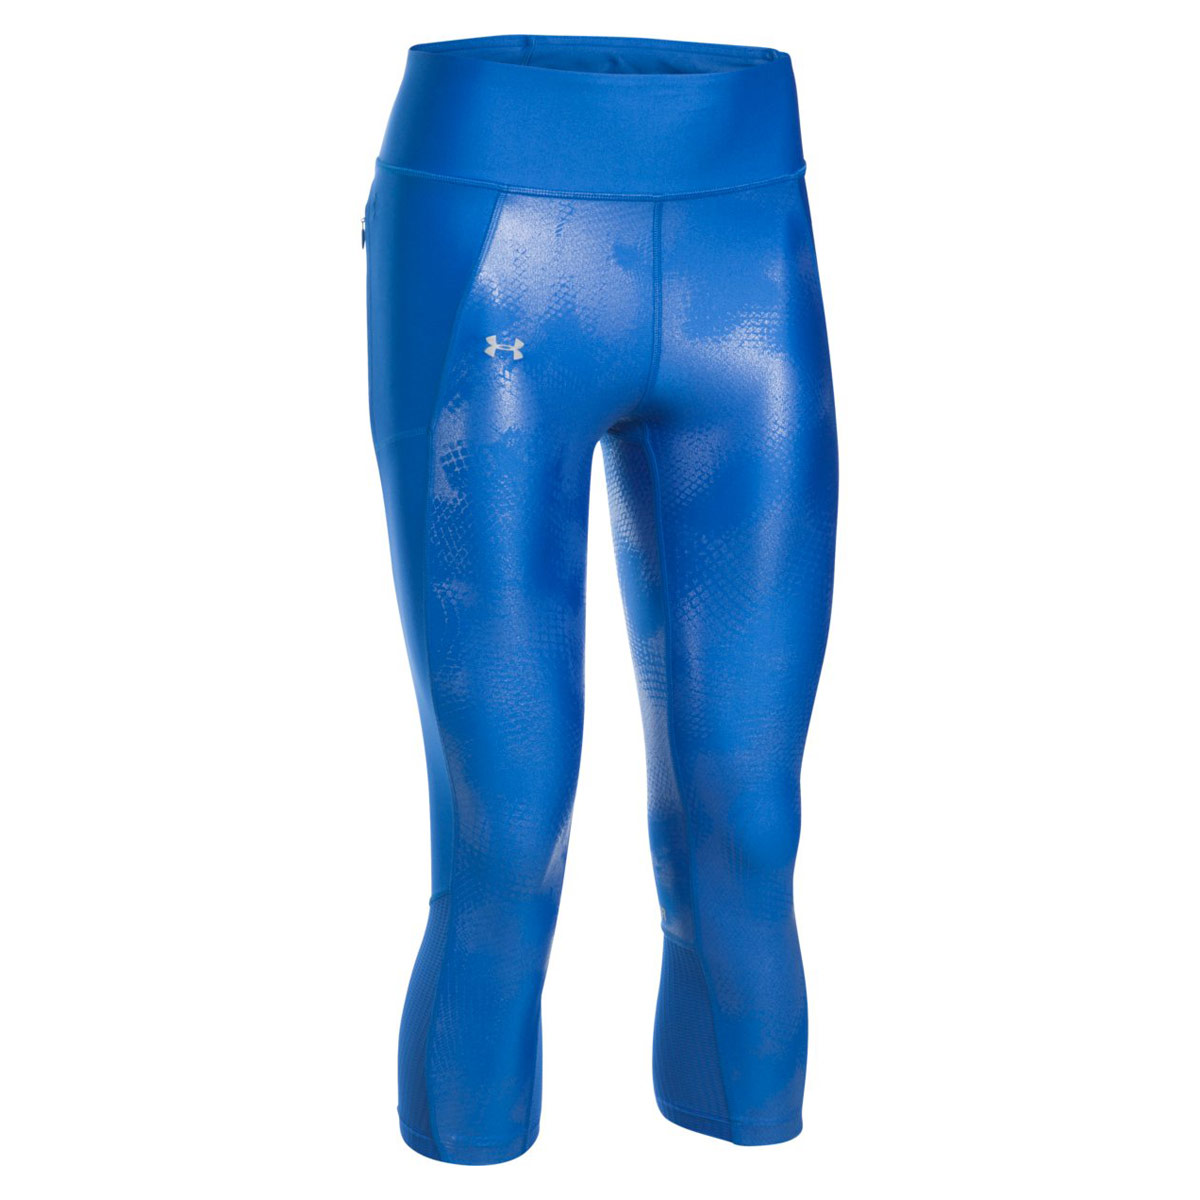 ac4dfb5491c41e Under Armour Fly By Printed Capri - Running trousers for Women - Blue |  21RUN